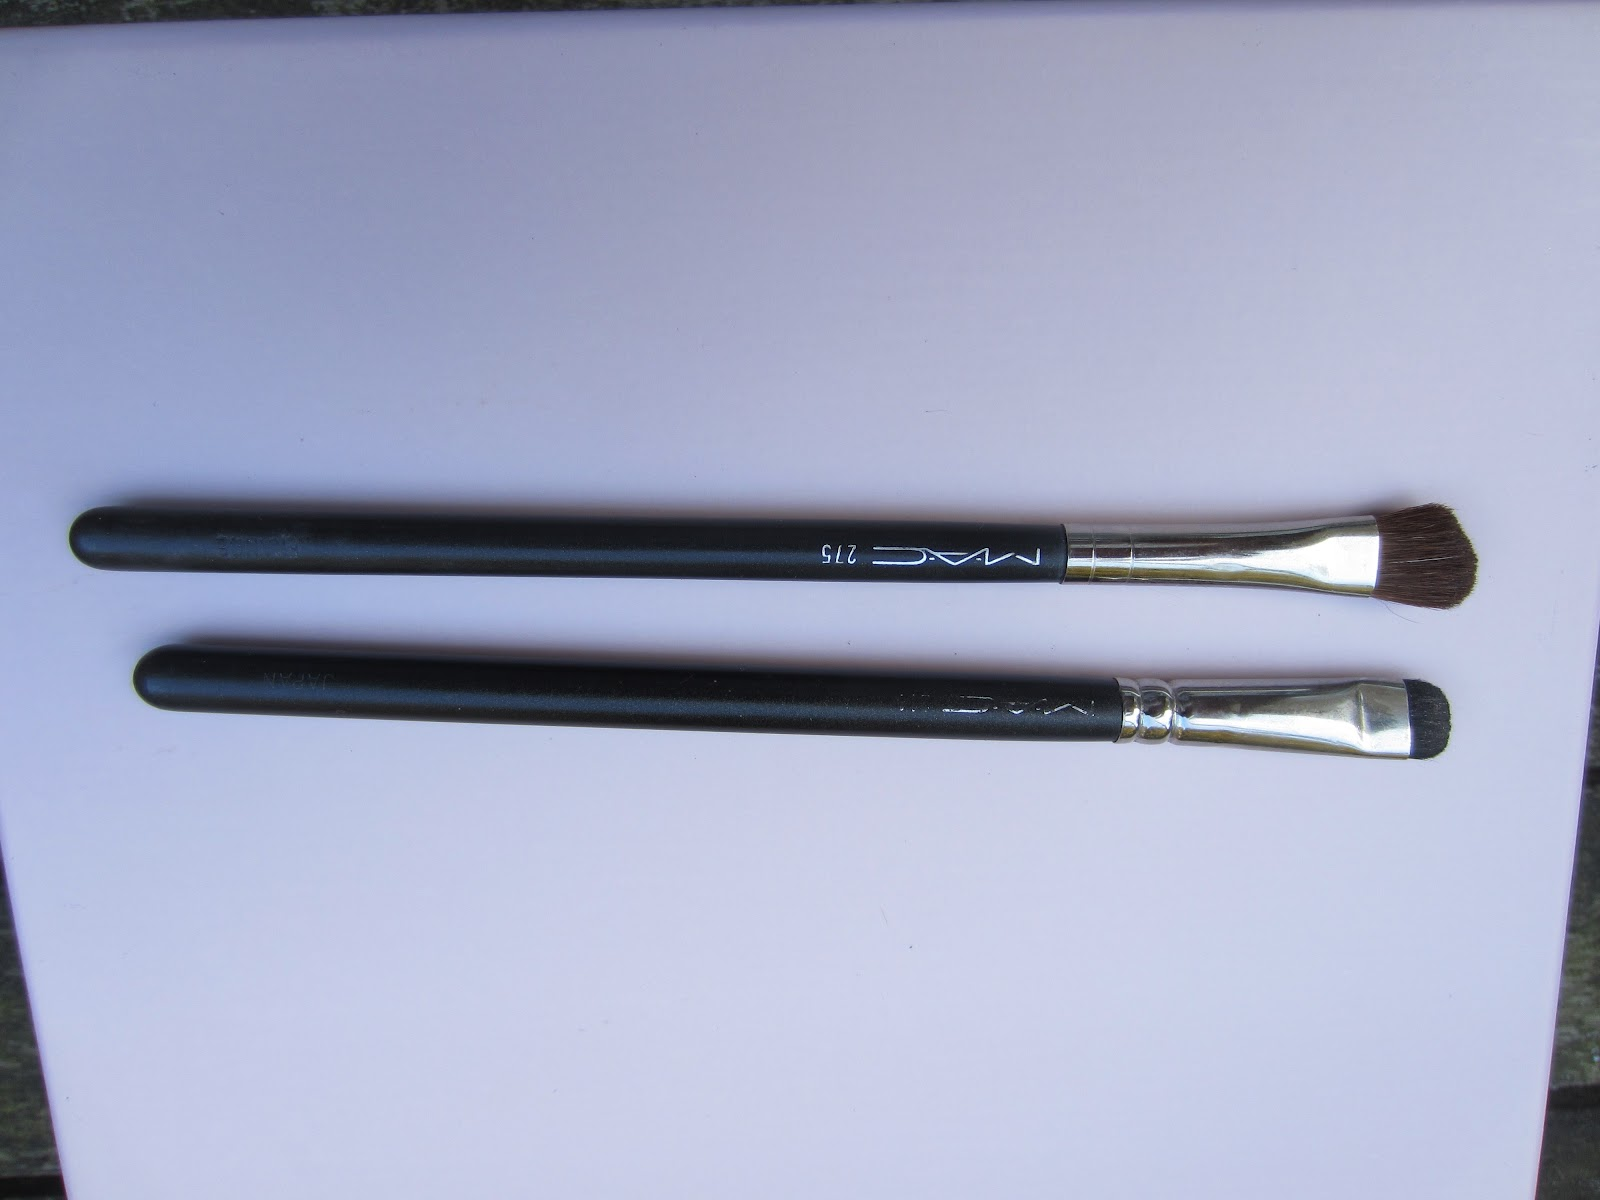 mac 239 brush. 2 random mac eye shadow brushes i own are the mac 275, which is an angled shader brush, and 214 short brush. rarely reach for these 239 brush